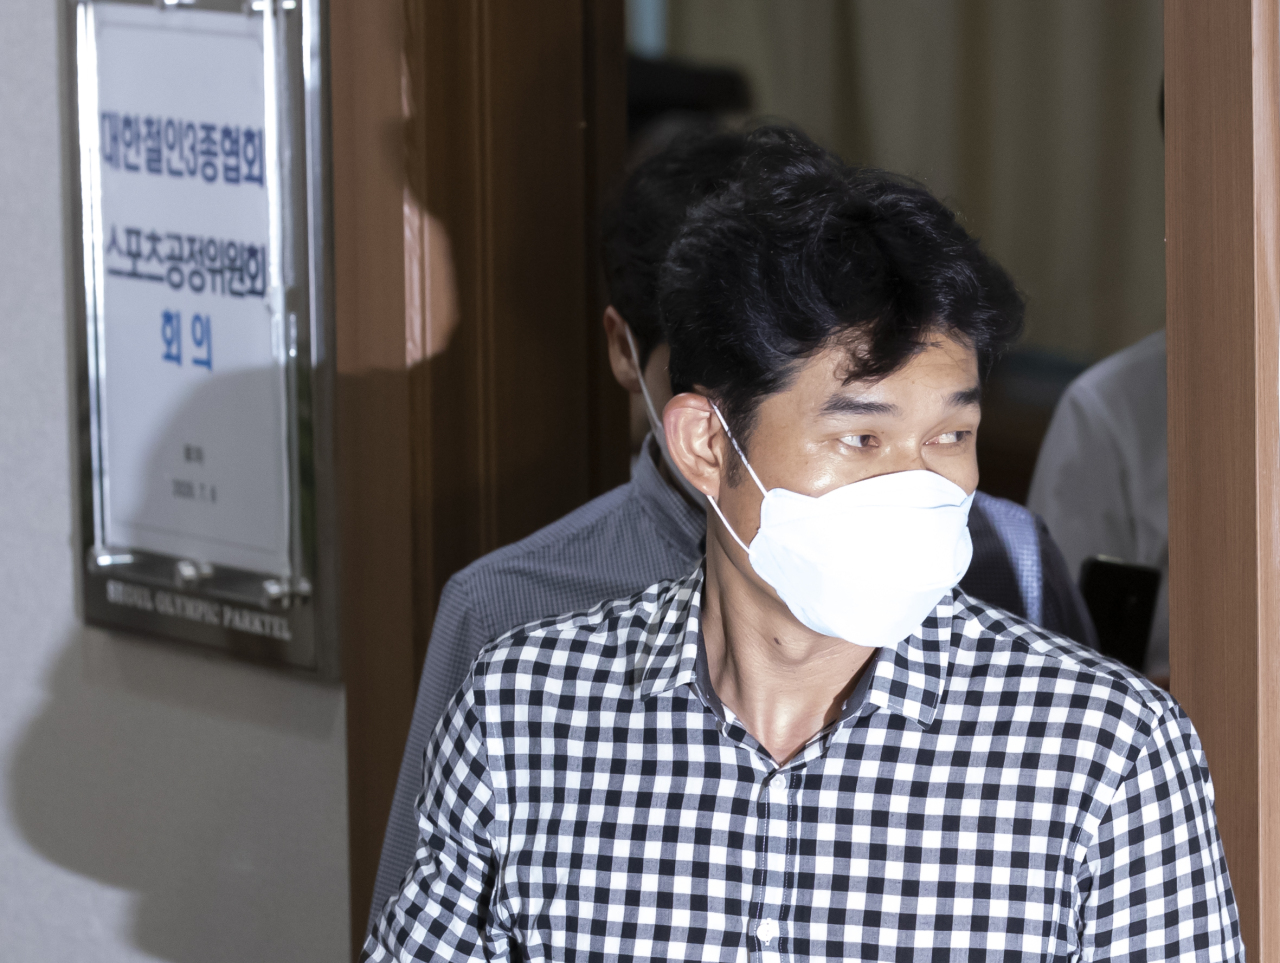 Kim Gyu-bong, head coach of the triathlon team at Gyeongju City Hall and a central figure in an abuse scandal involving a late athlete, leaves the disciplinary committee meeting held by the Korea Triathlon Federation in Seoul, July 6. (Yonhap)